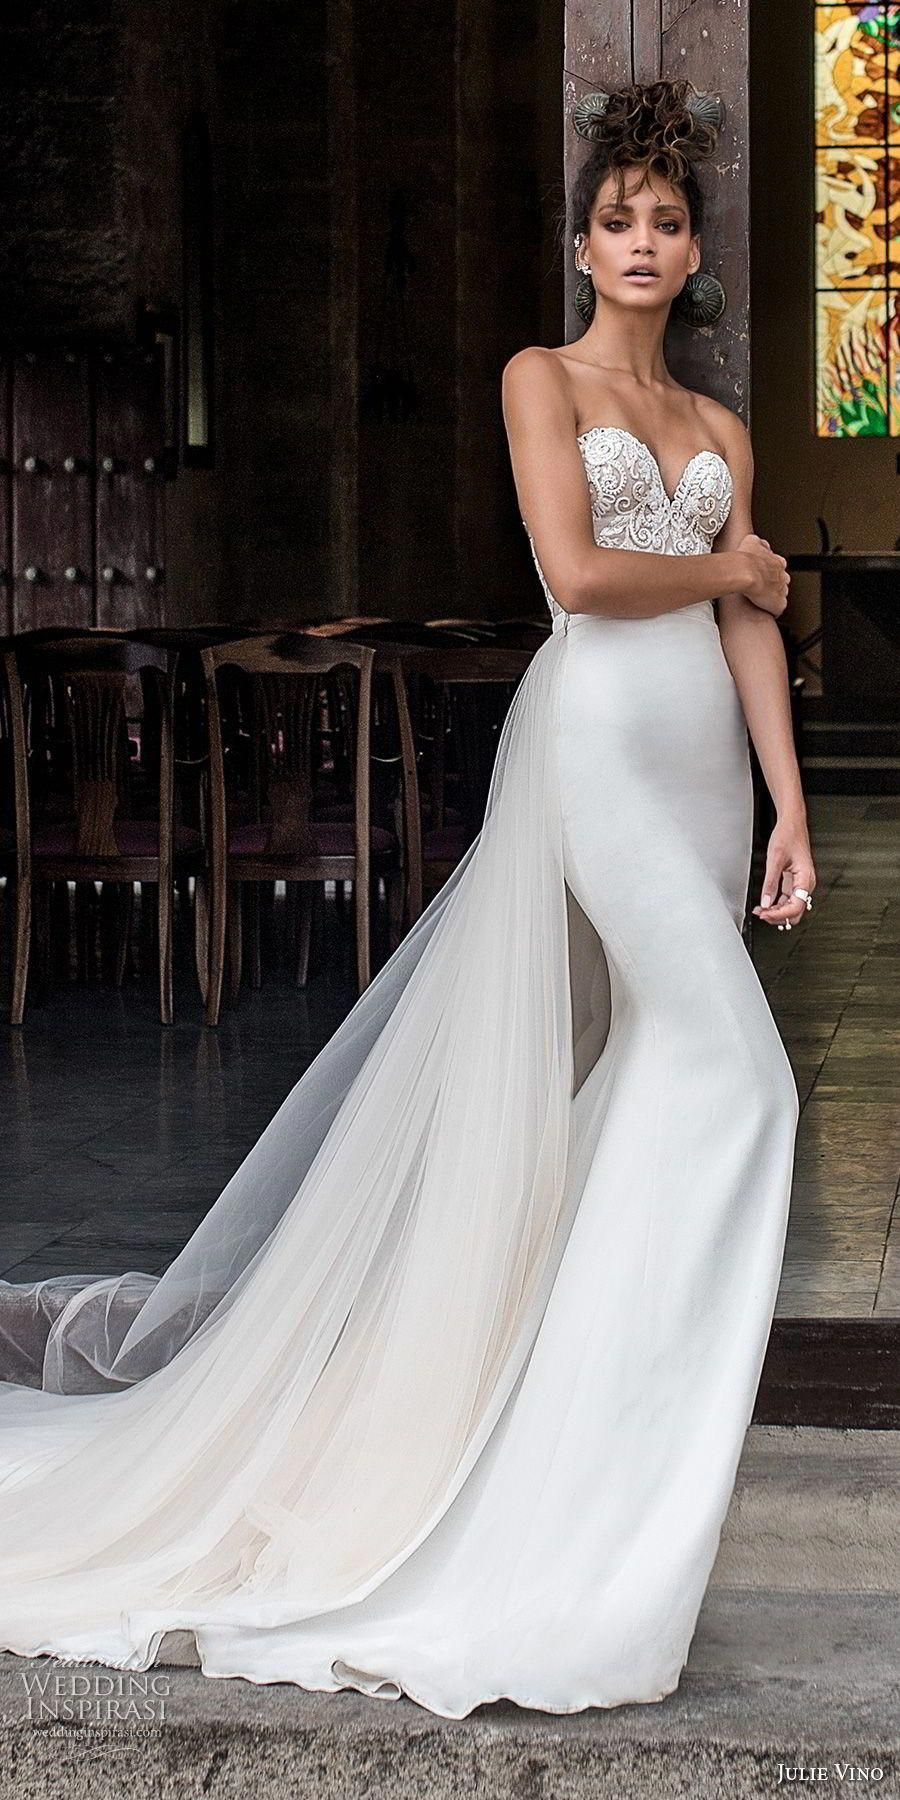 1c6d4b55b687 julie vino fall 2018 havana strapless sweetheart neckline heavily  embellished elegant sheath wedding dress chapel train